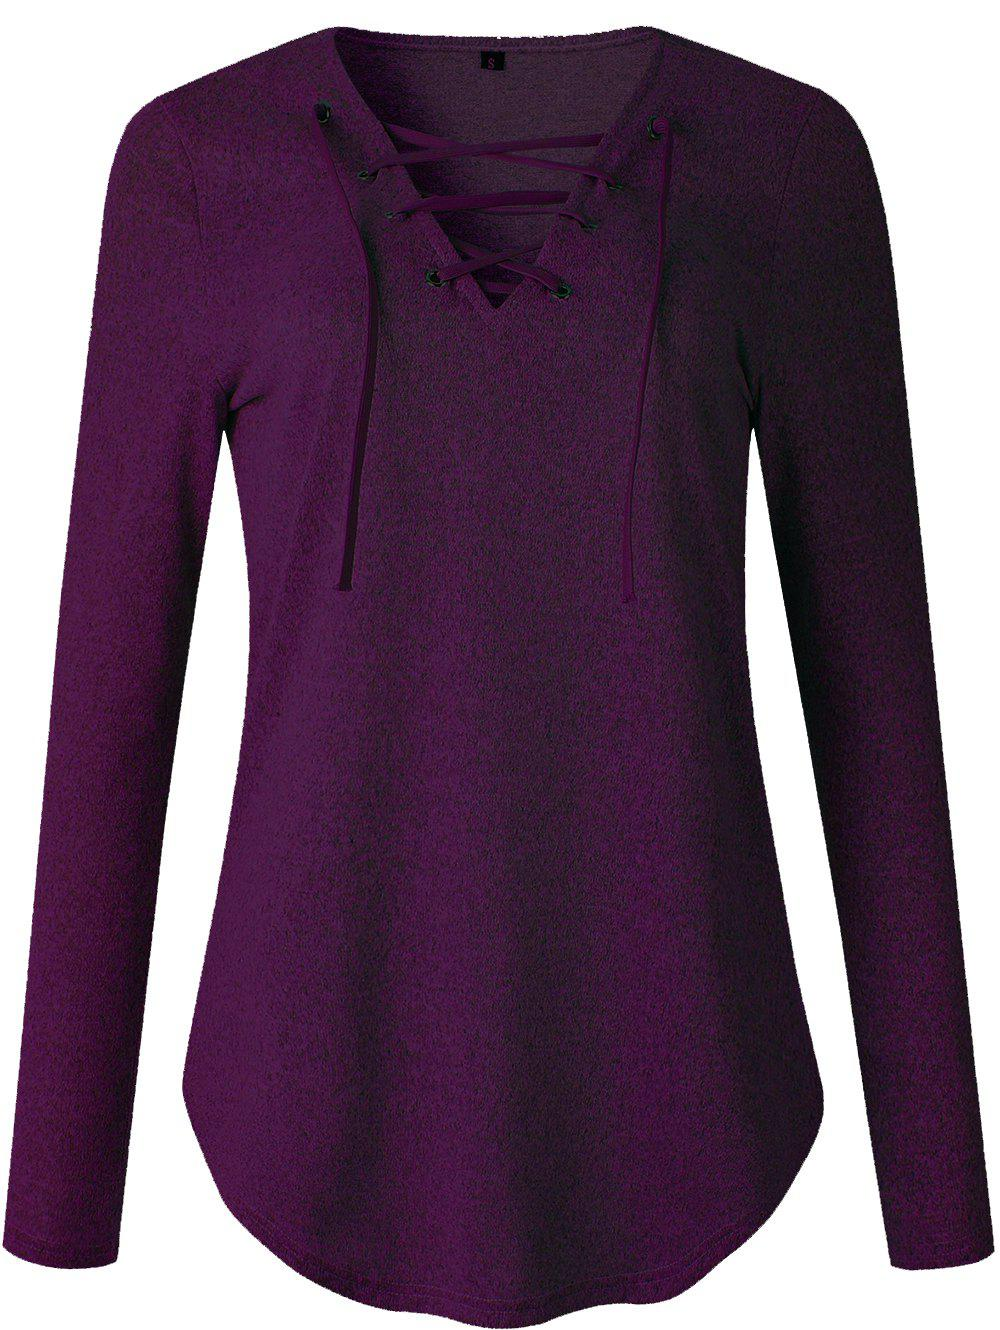 Best Womens V Neck Long Sleeve Loose Casual Knit Sweaters Pullover Tops